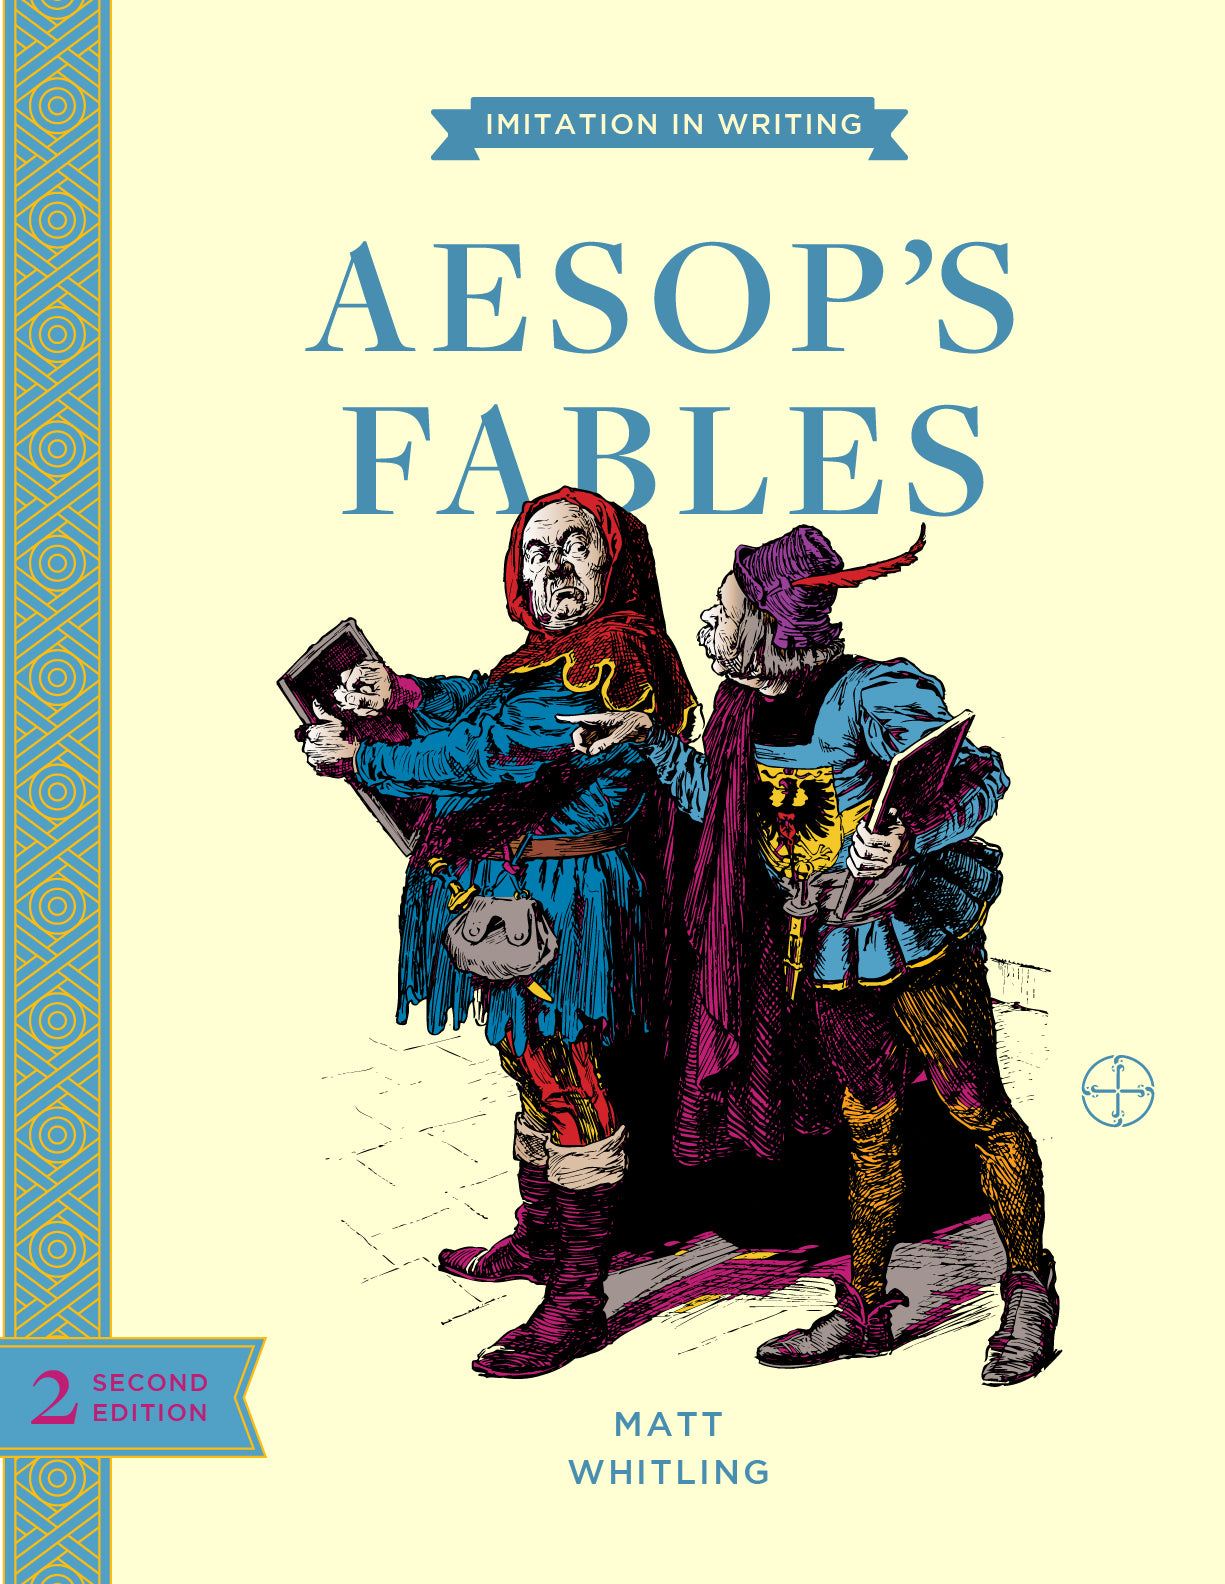 Imitation in Writing: Aesop's Fables